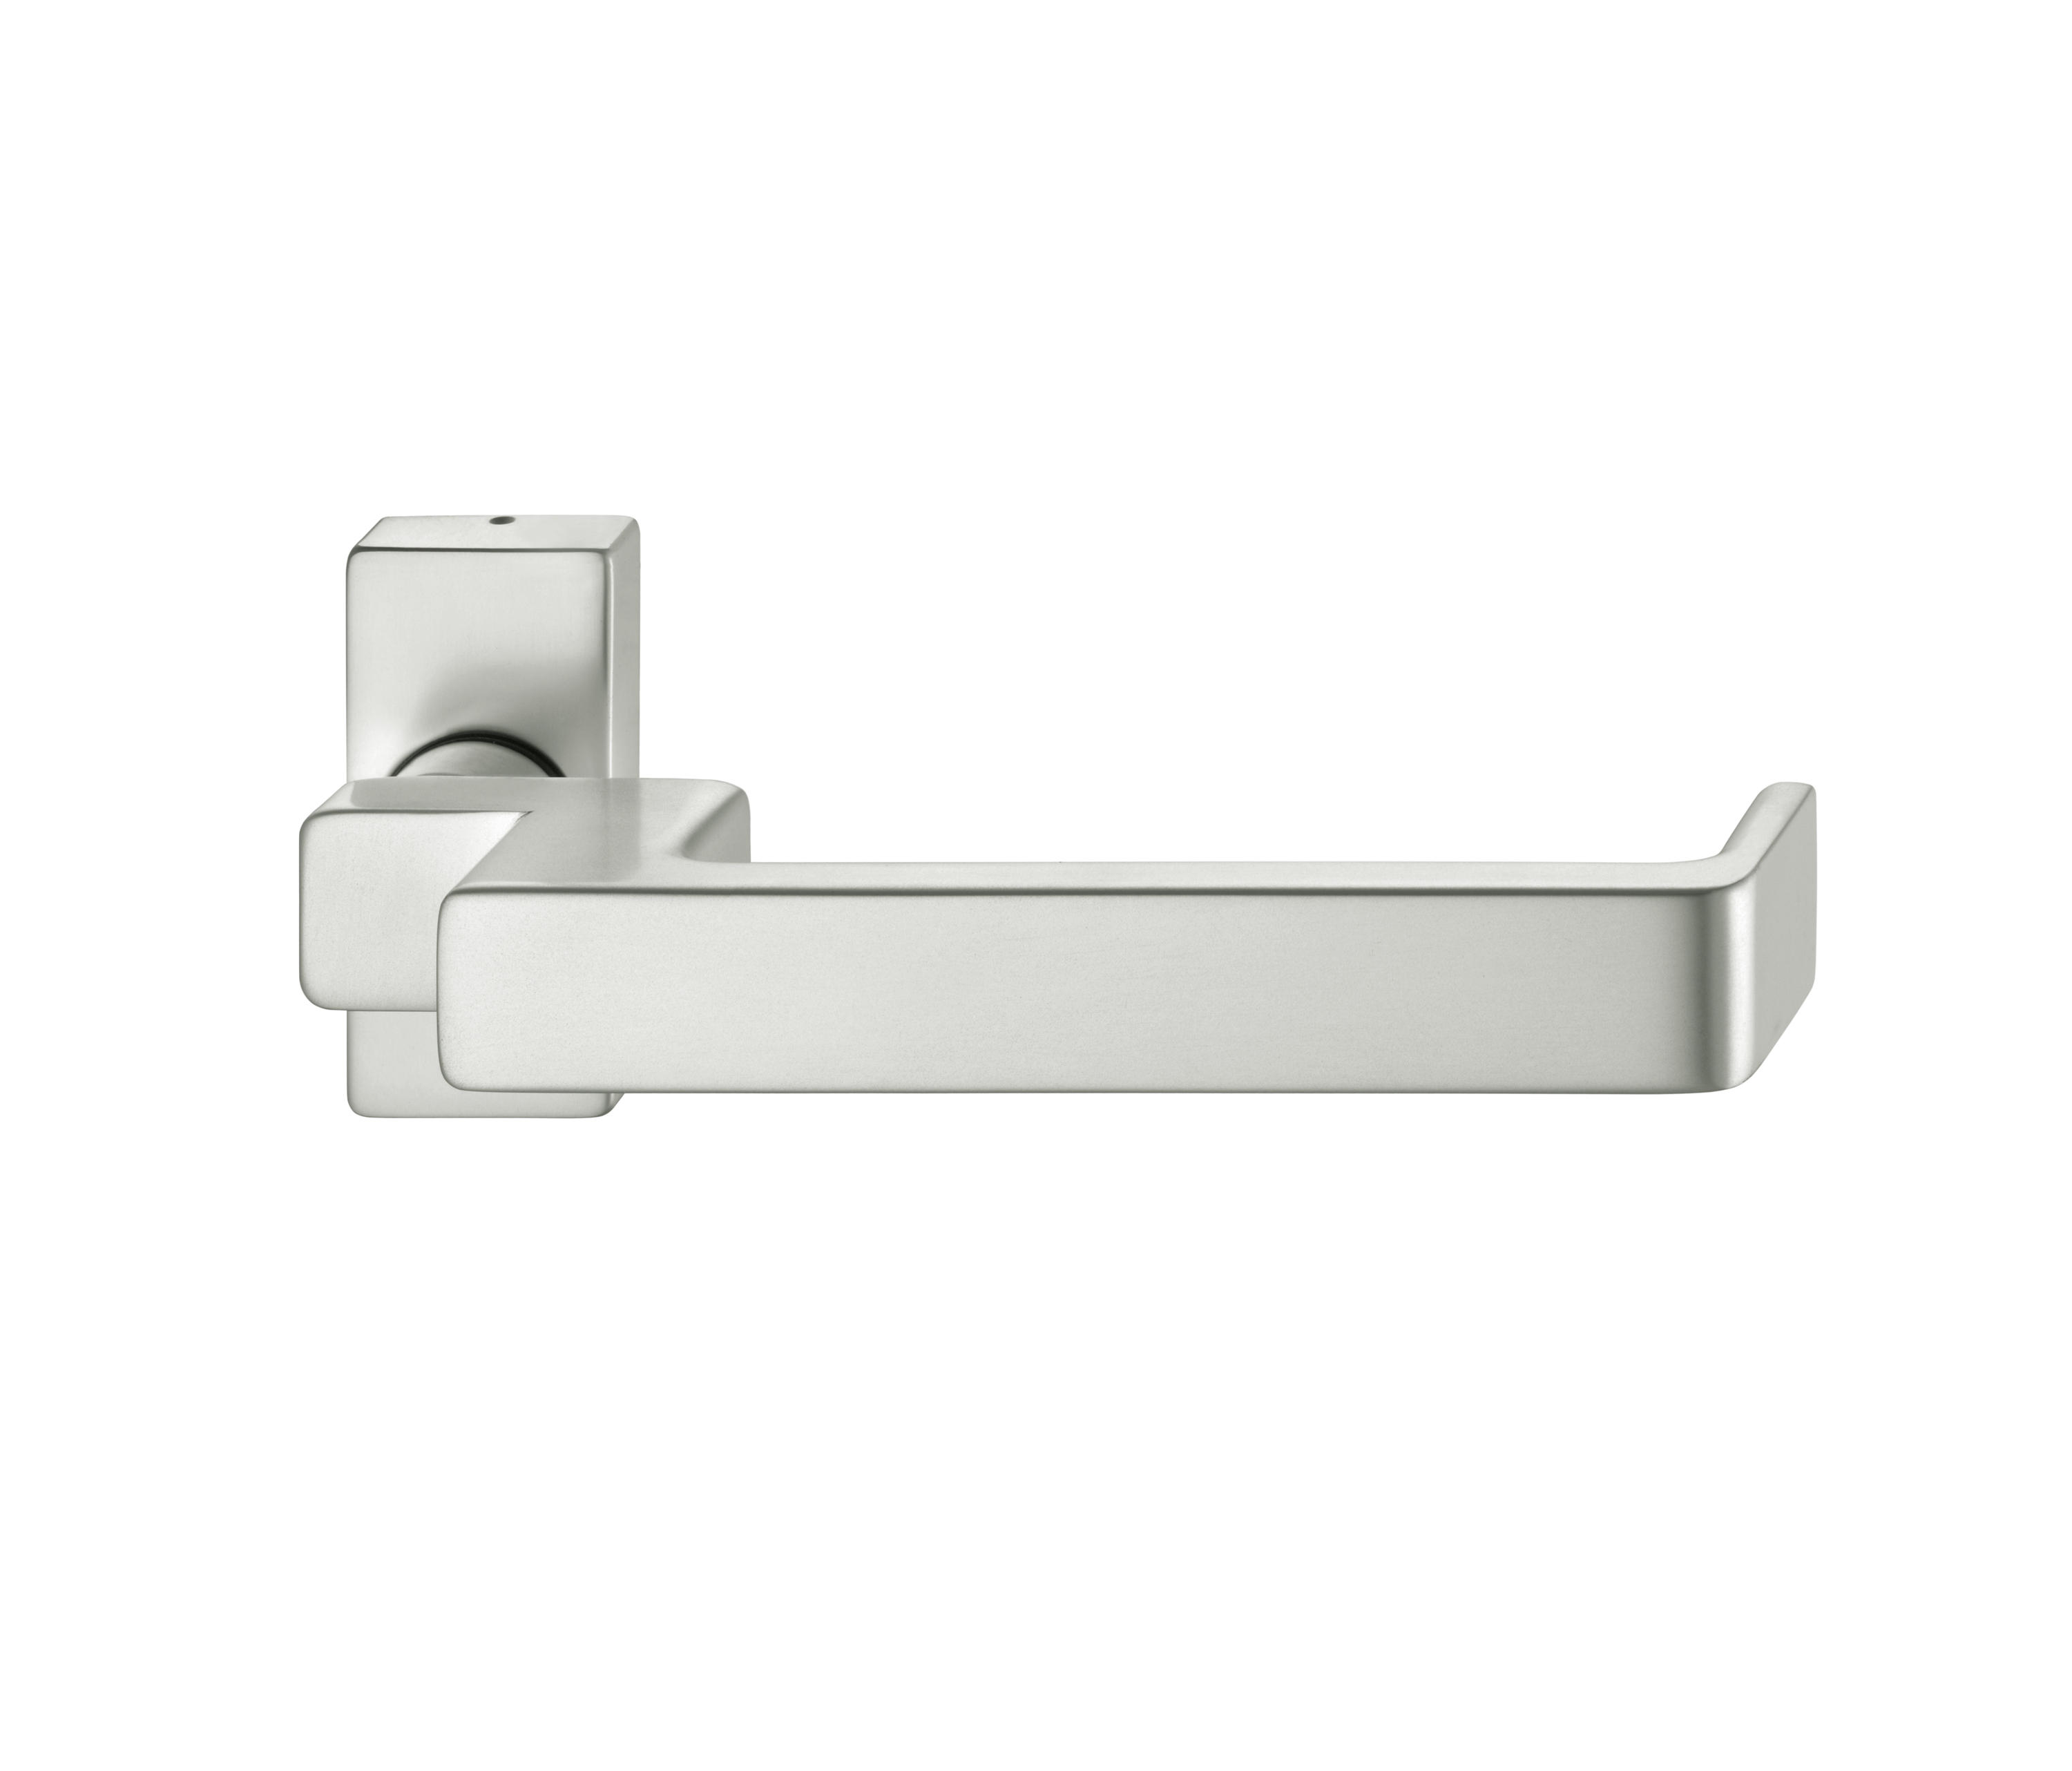 fsb 1222 lever handle lever handles from fsb architonic. Black Bedroom Furniture Sets. Home Design Ideas